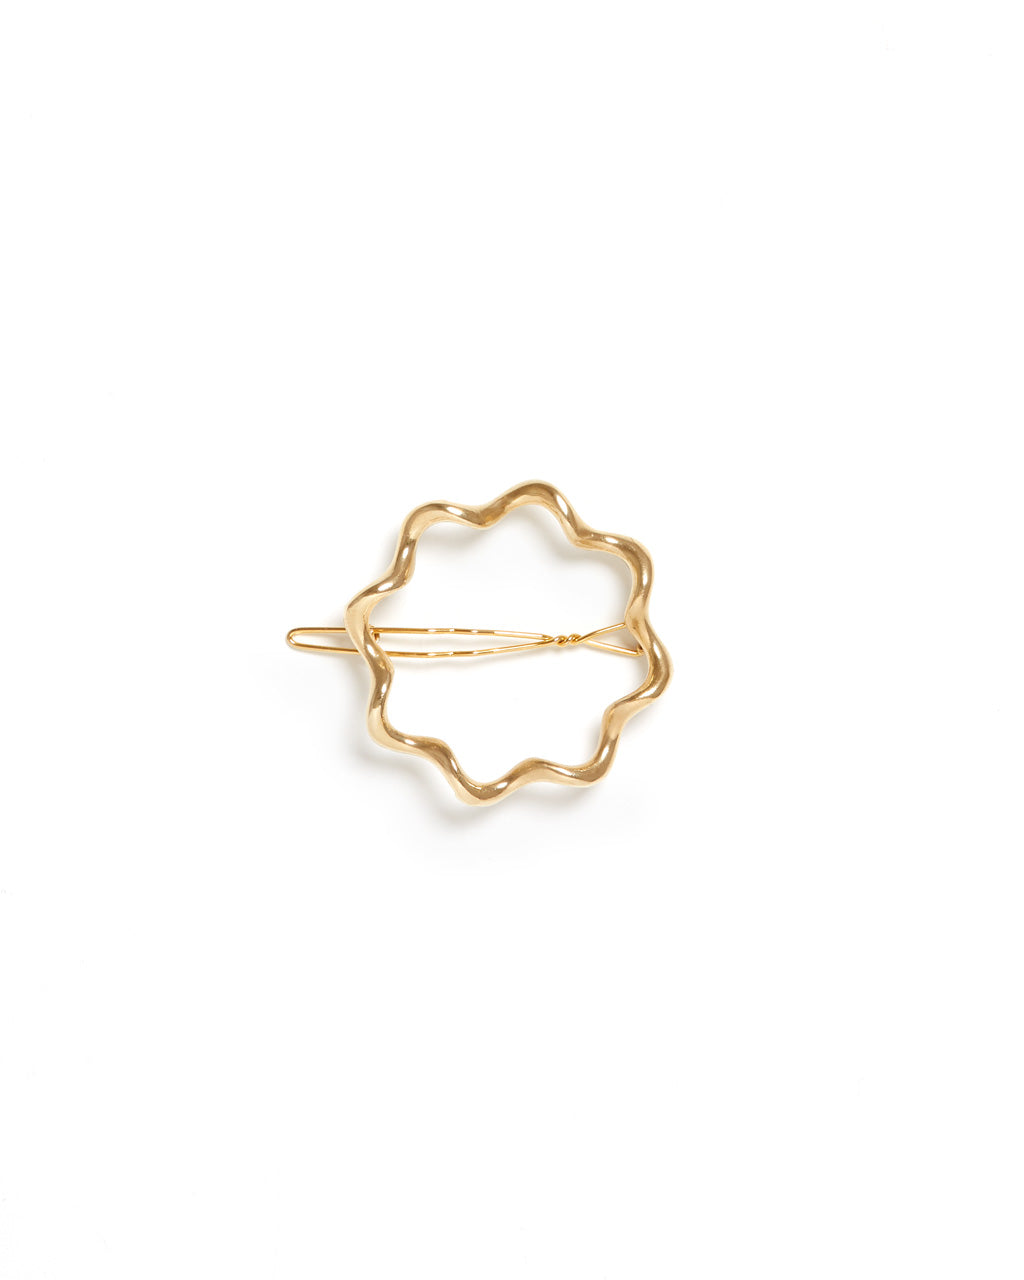 medium sized gold barrette with a unique shape